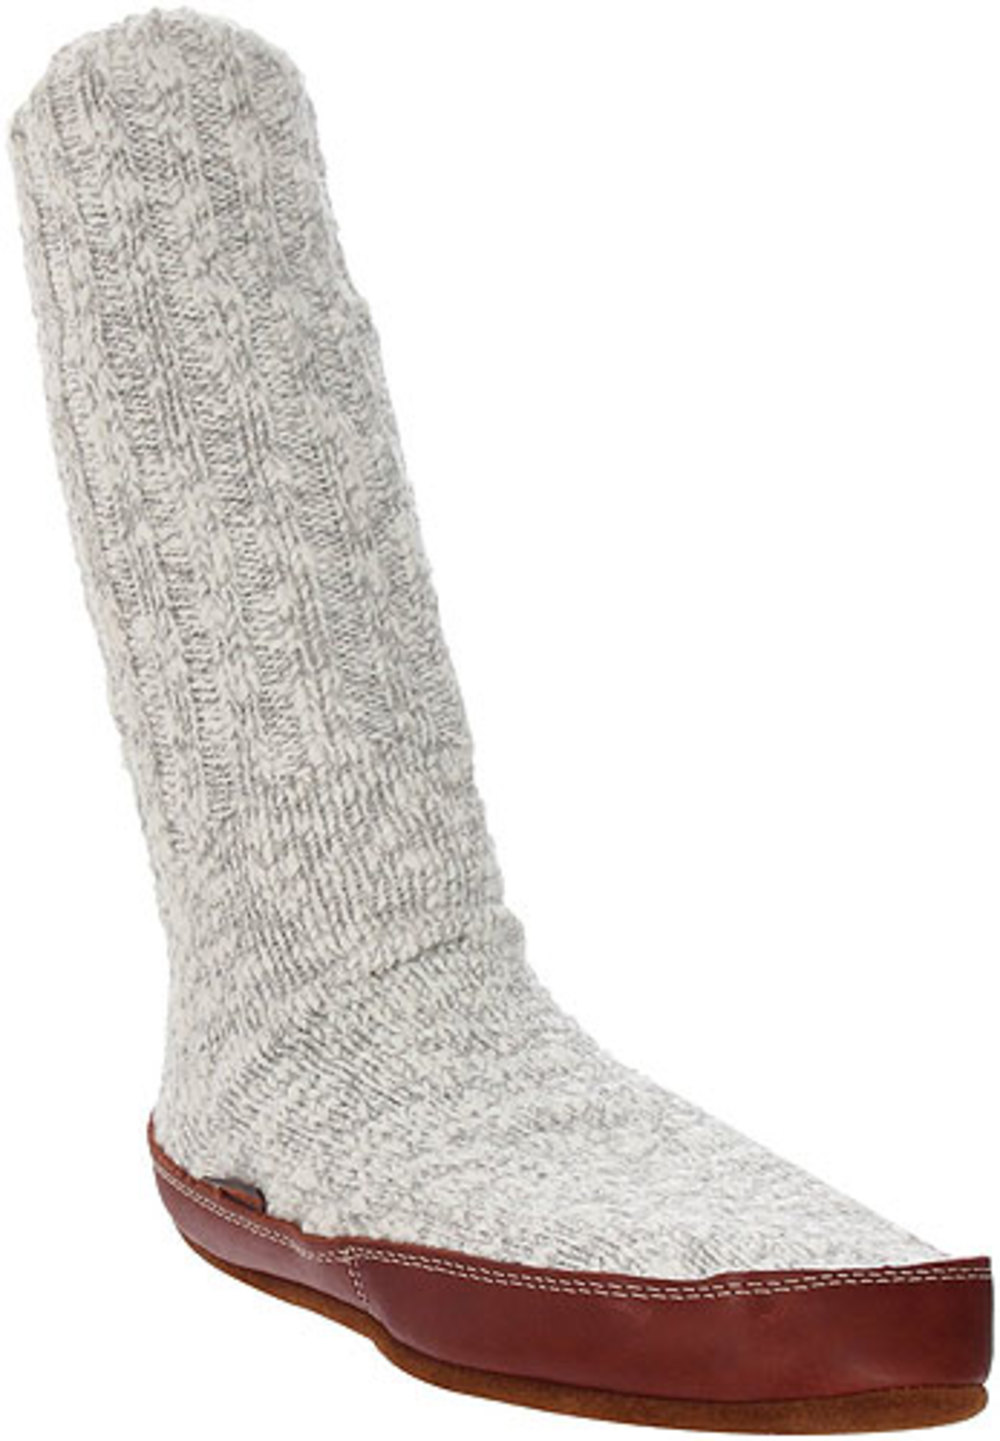 Unisex Acorn SLIPPER Lightweight Socks GRAY XS